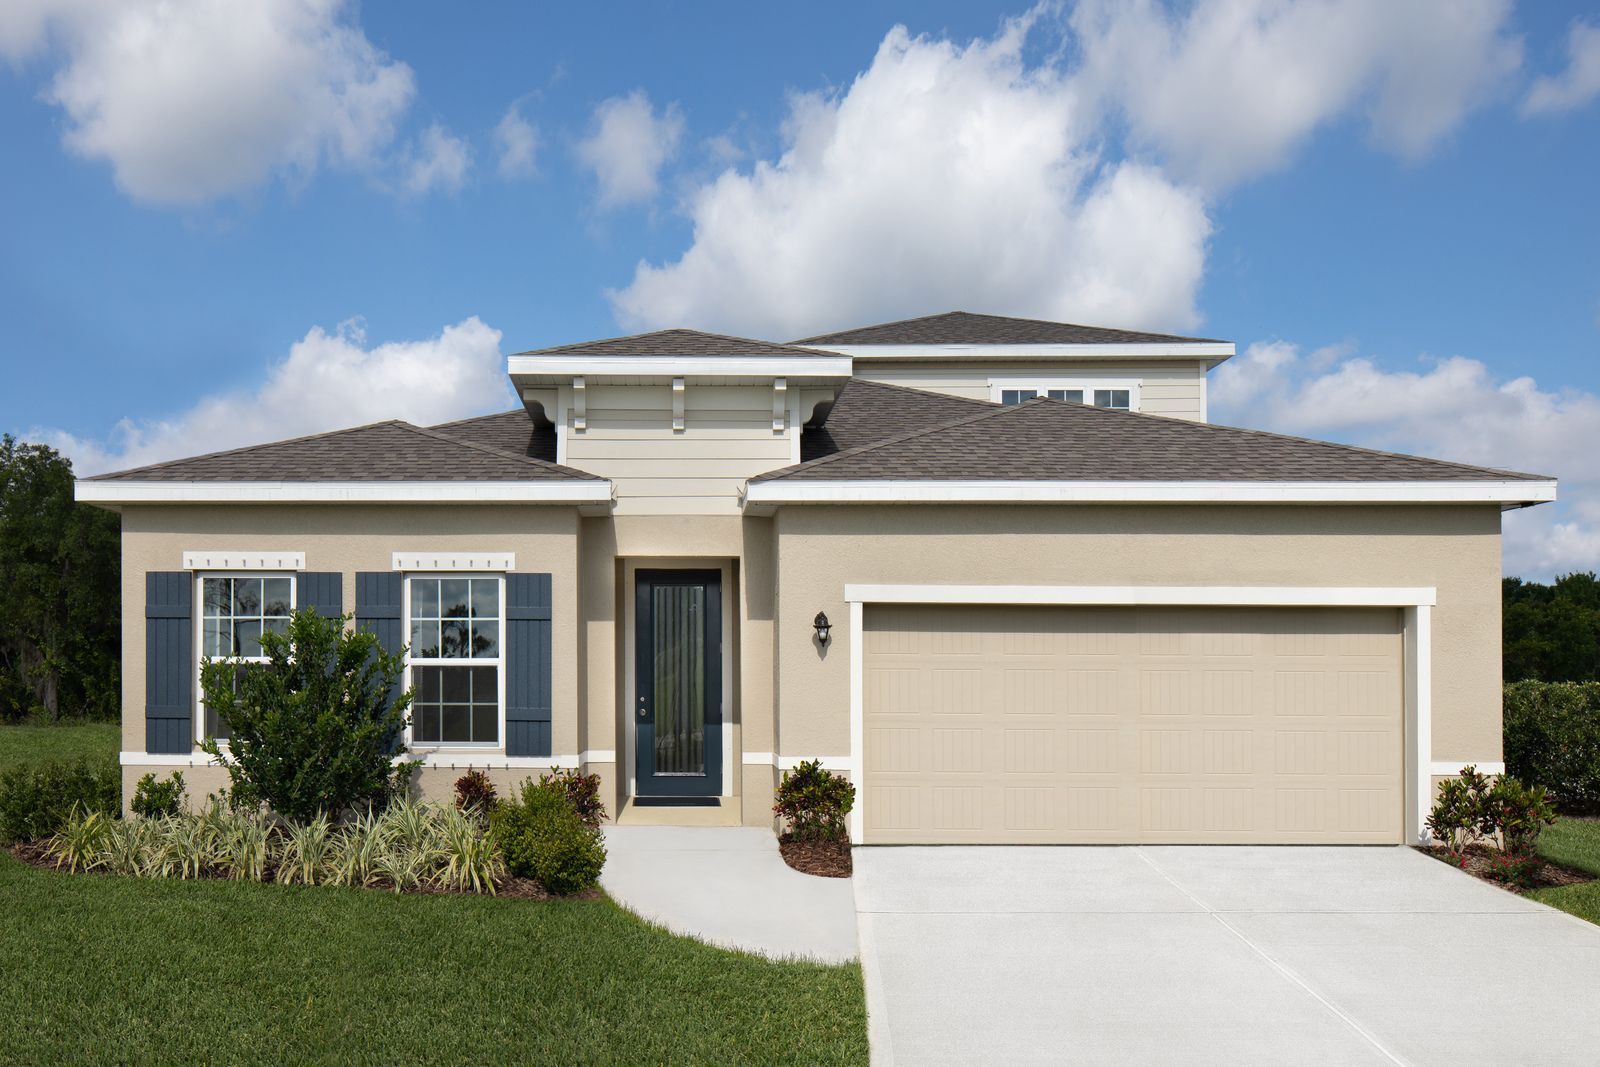 WELCOME TO RIVERSIDE RESERVE!:Own a brand new single-family home in desirable Seminole County from the mid $200s. Schedule your appointmenttoday! 100% USDA financing.